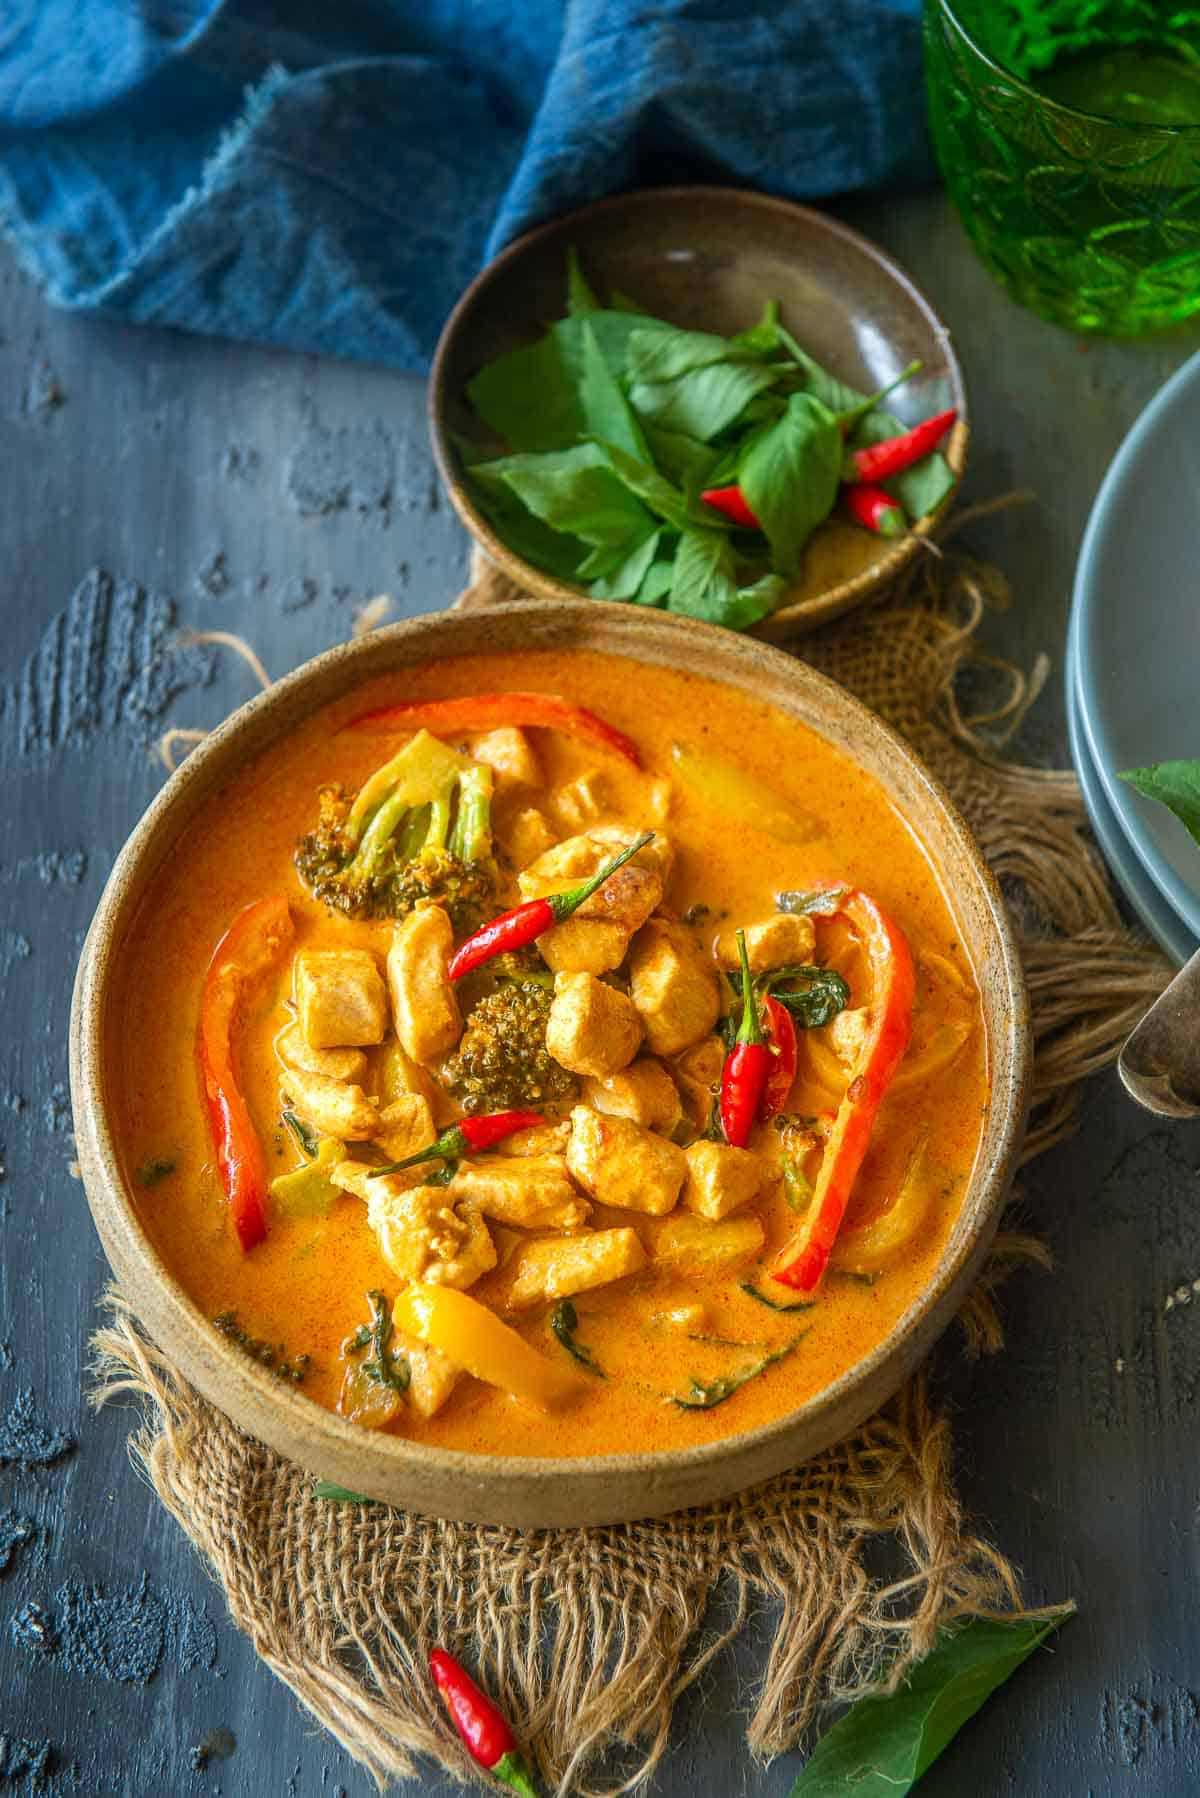 Chicken Panang curry served in a bowl.